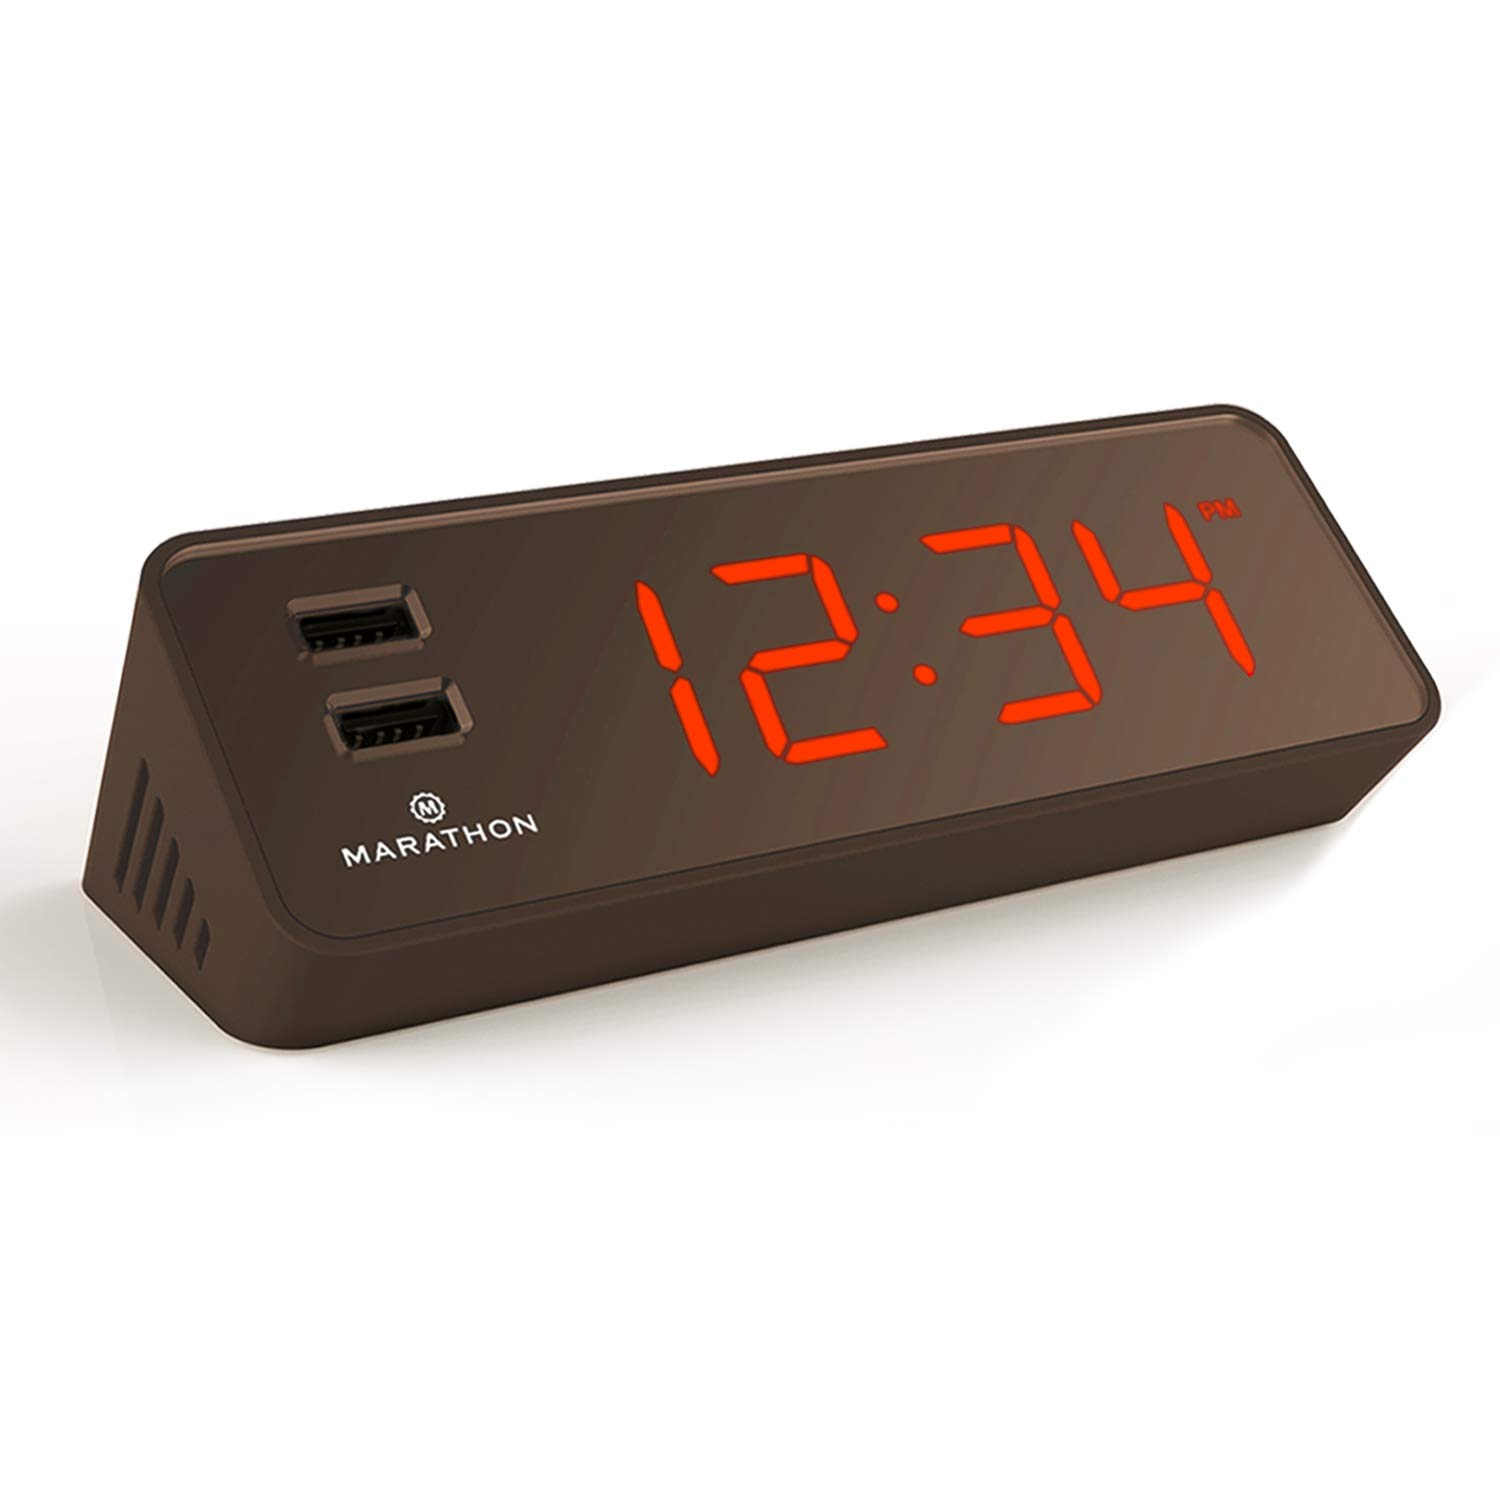 Marathon CL030055CO LED Alarm Clock with Two Fast Charging, Front Facing USB Ports. Great for Travelling. Hotel Commercial Grade (Coco)